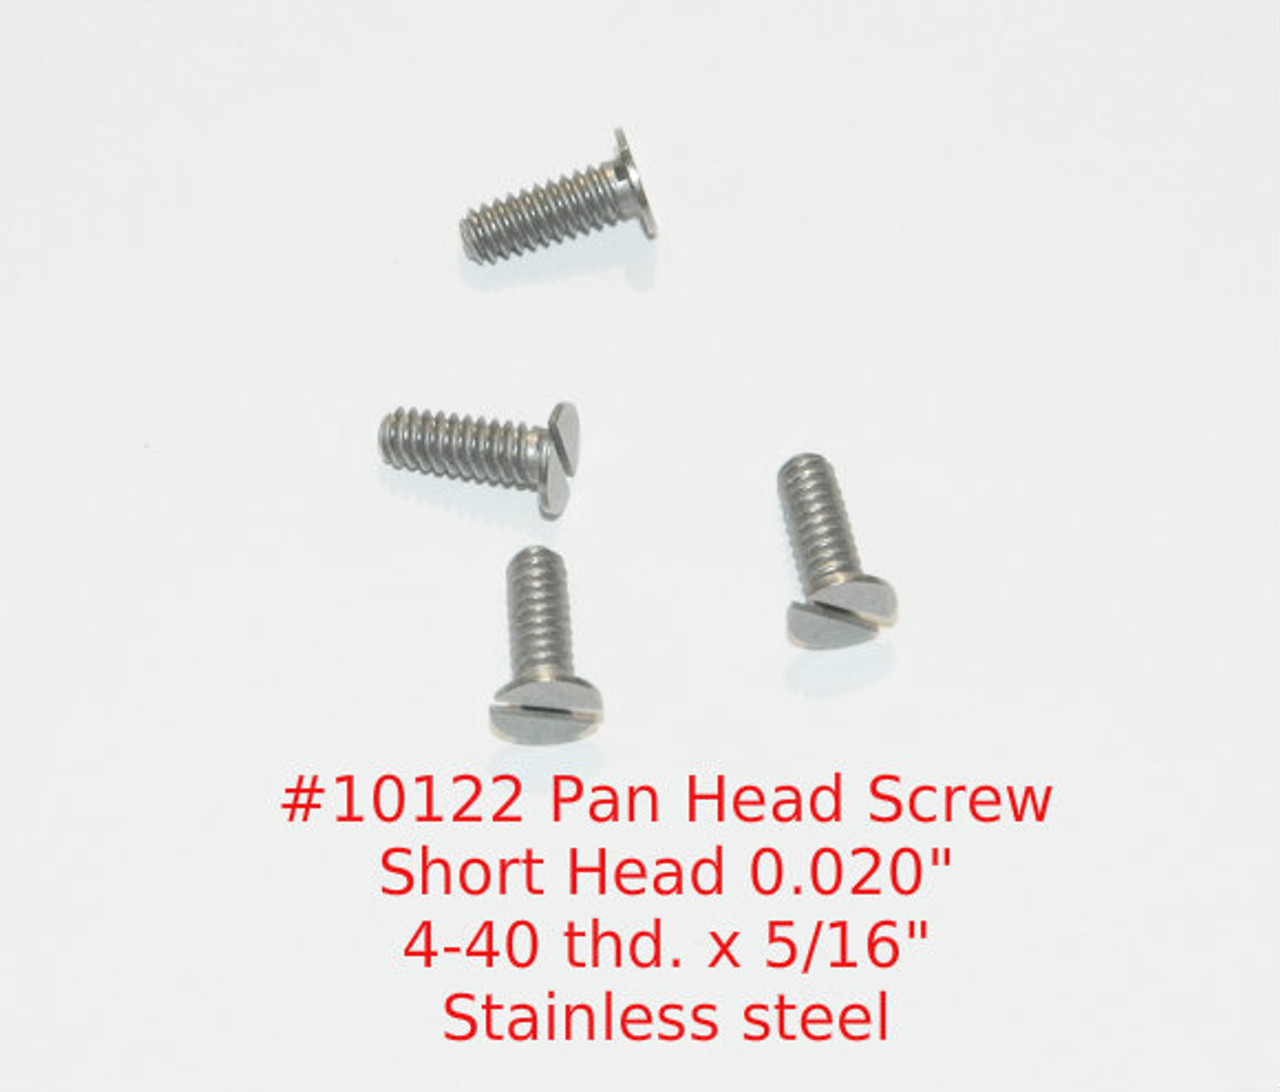 """4-40 2A Pan Head (Short 0.020"""") Slotted Machine Screw, Length 5/16"""" Full Thread, Stainless Steel #303  Price is for 100 pieces.  All parts are certified and traceable."""